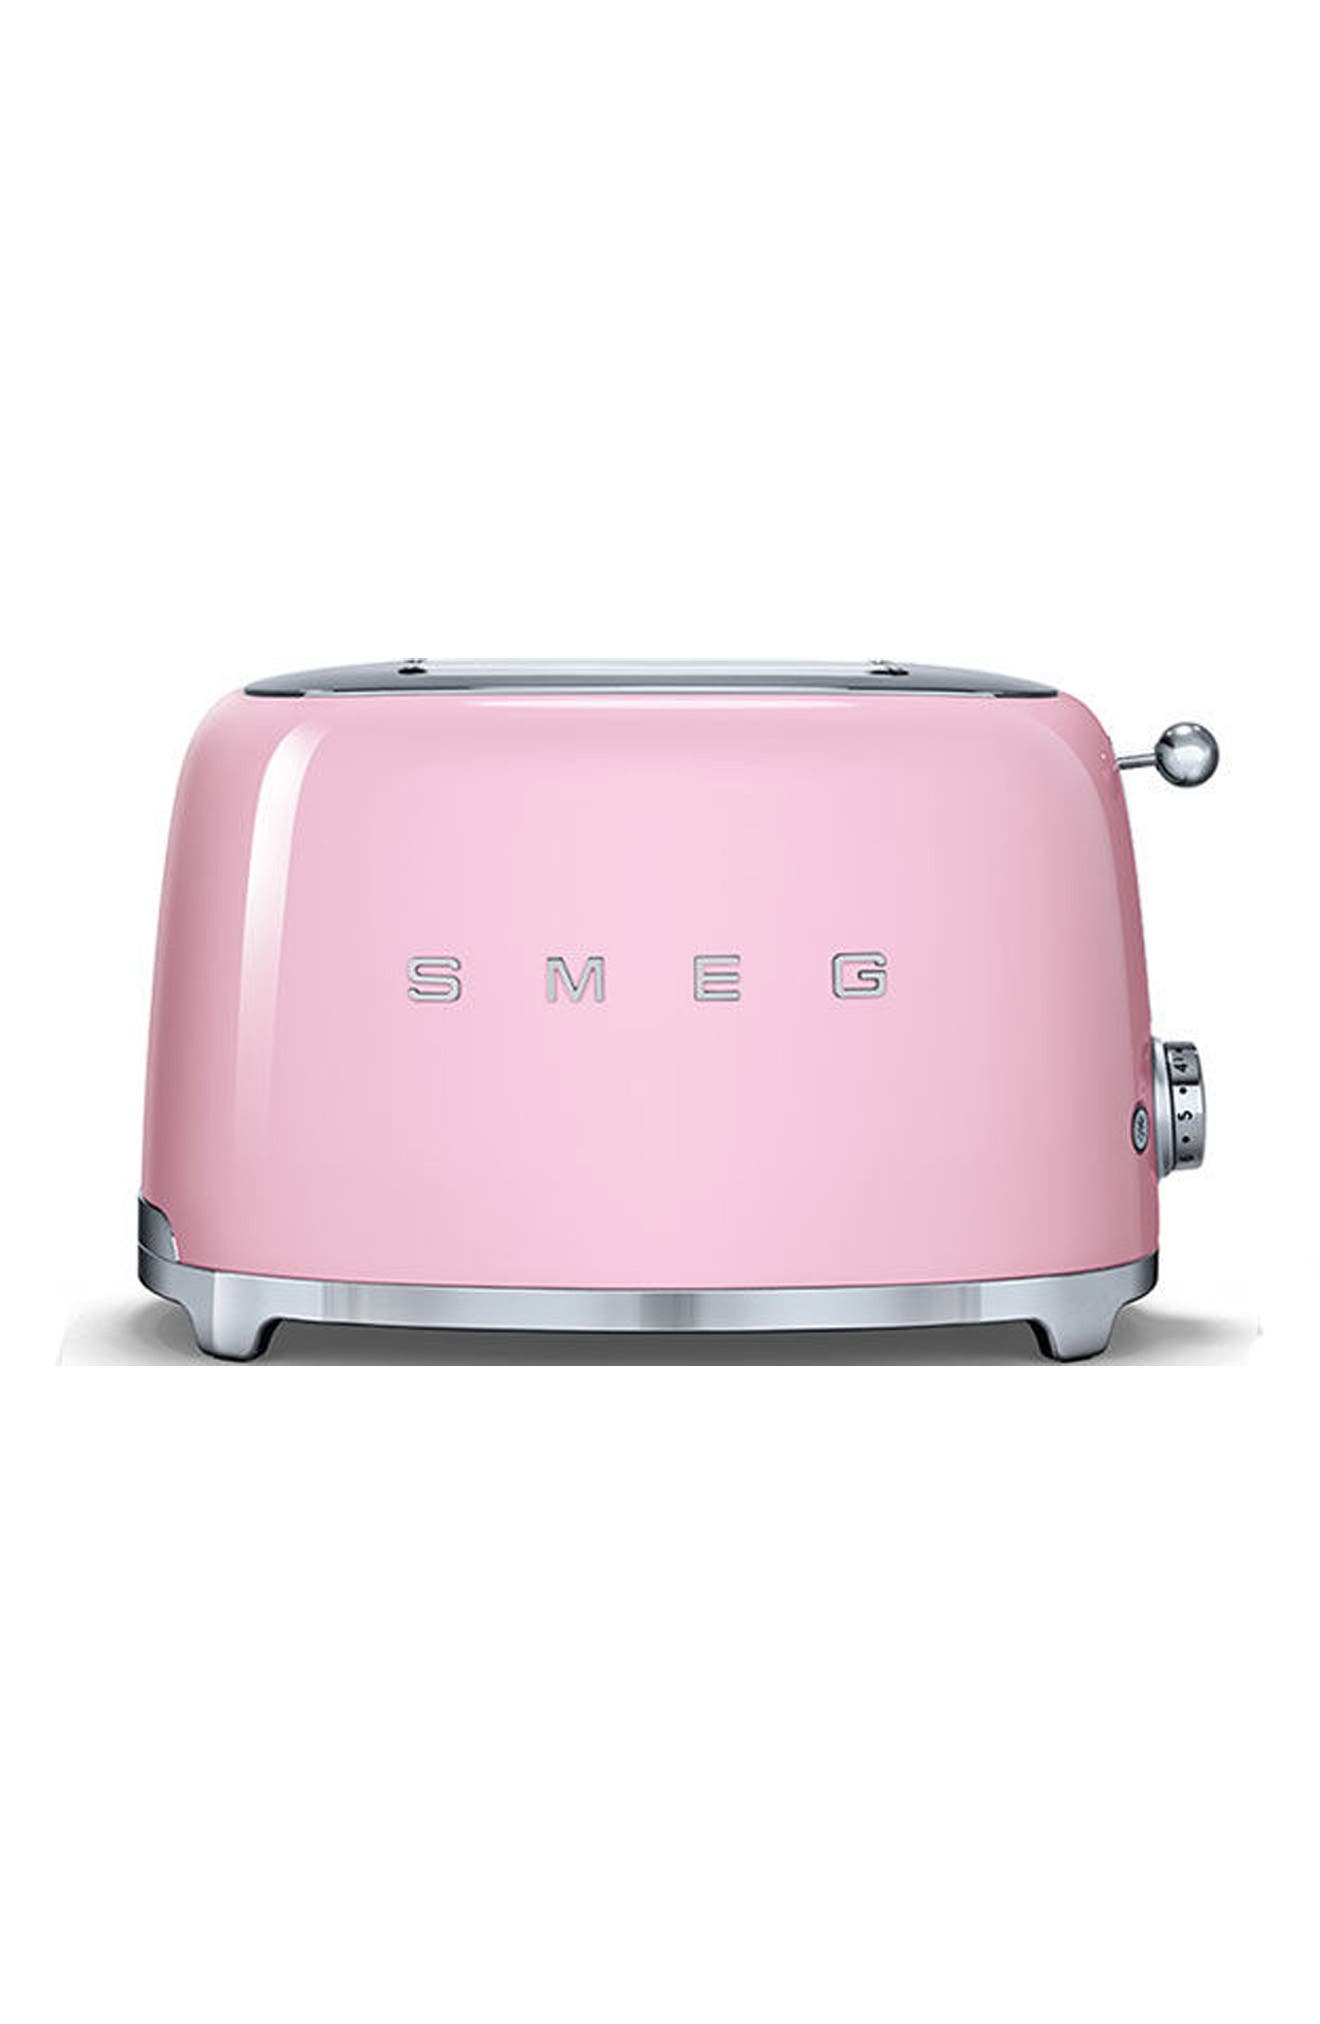 50s Retro Style Two-Slice Toaster,                             Main thumbnail 1, color,                             Pink